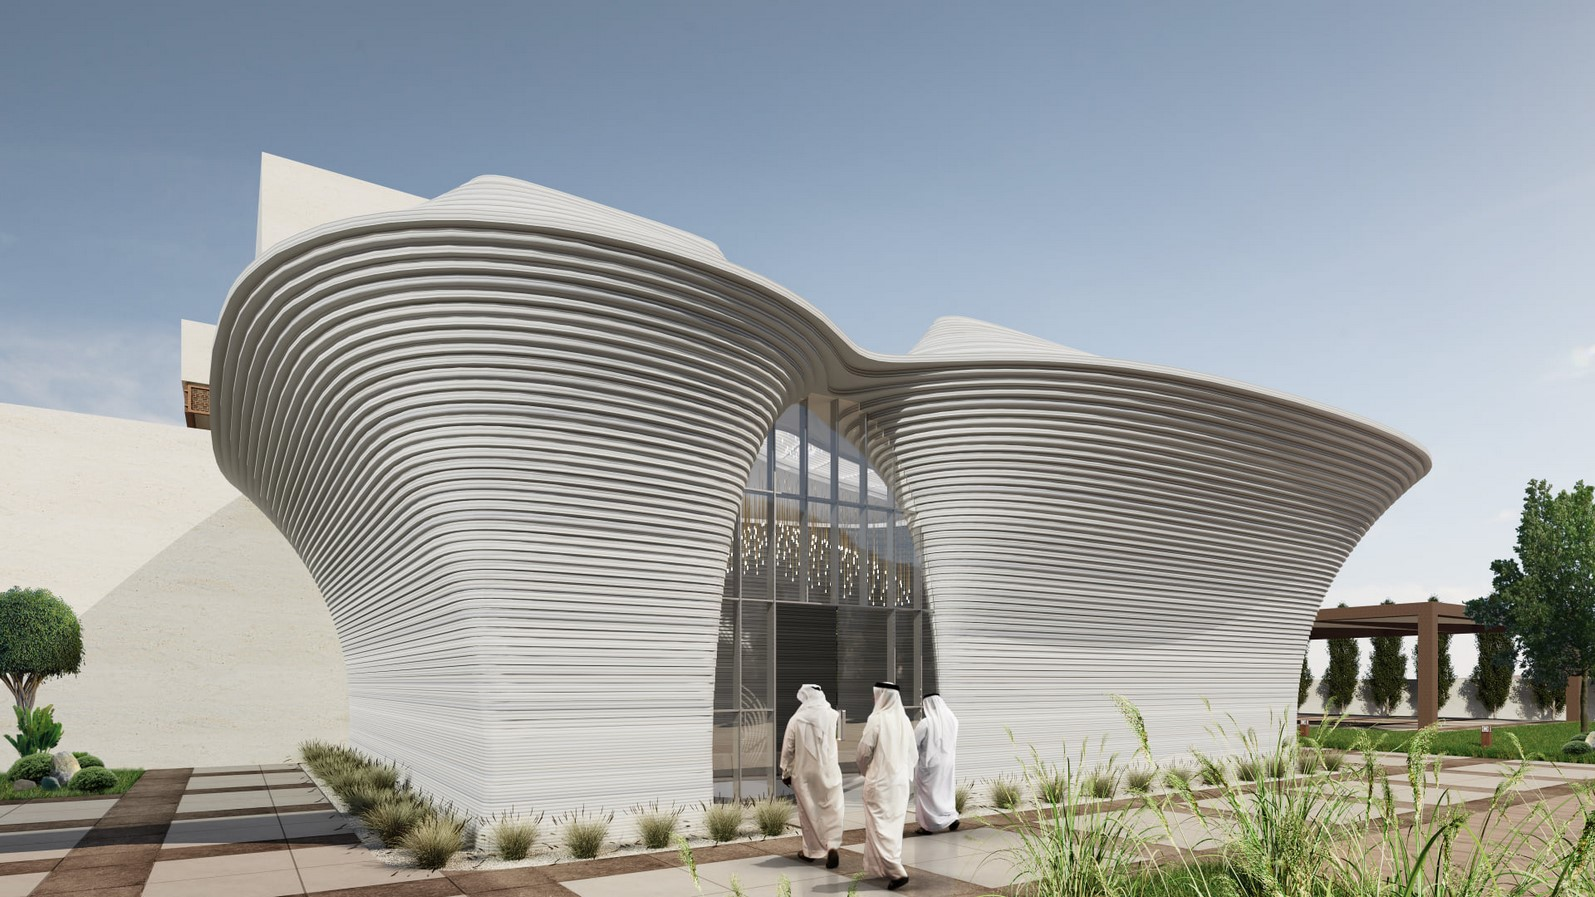 Modular 3D-Printed Majlis House With Smooth Concrete Walls In Abu Dhabi designed by MEAN* - Sheet5